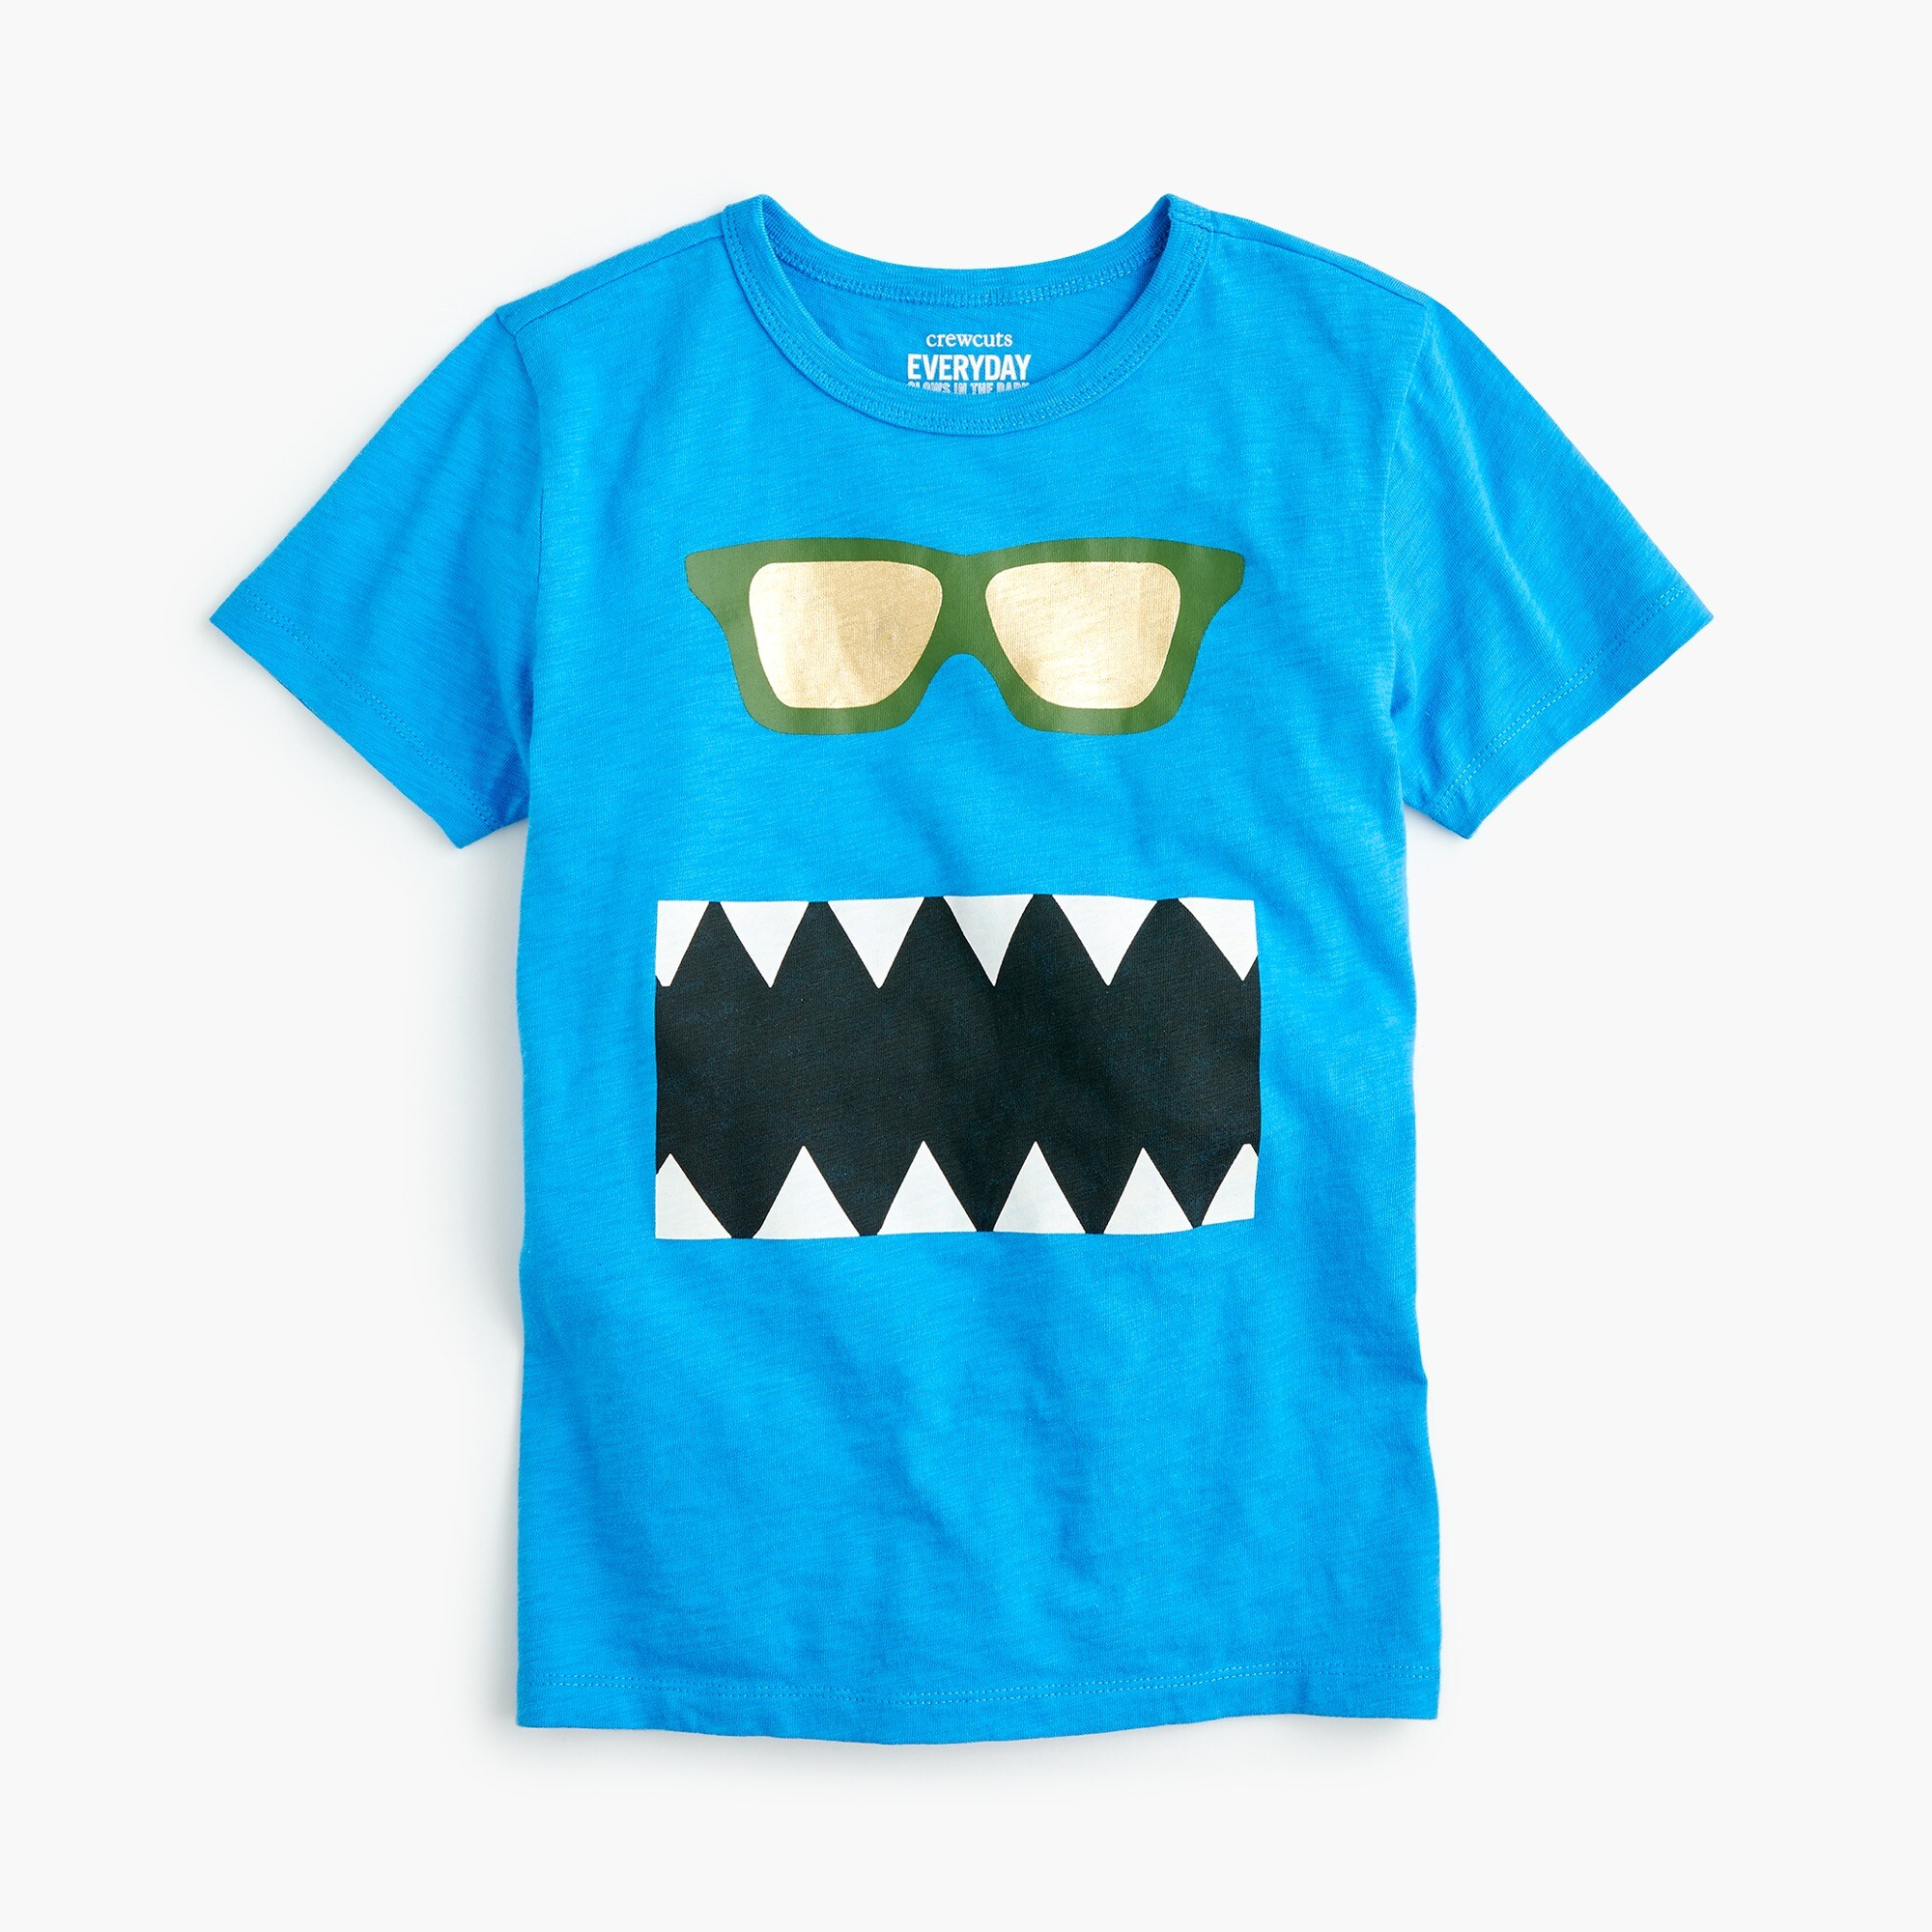 Boys' glow-in-the-dark snaggletooth monster T-shirt